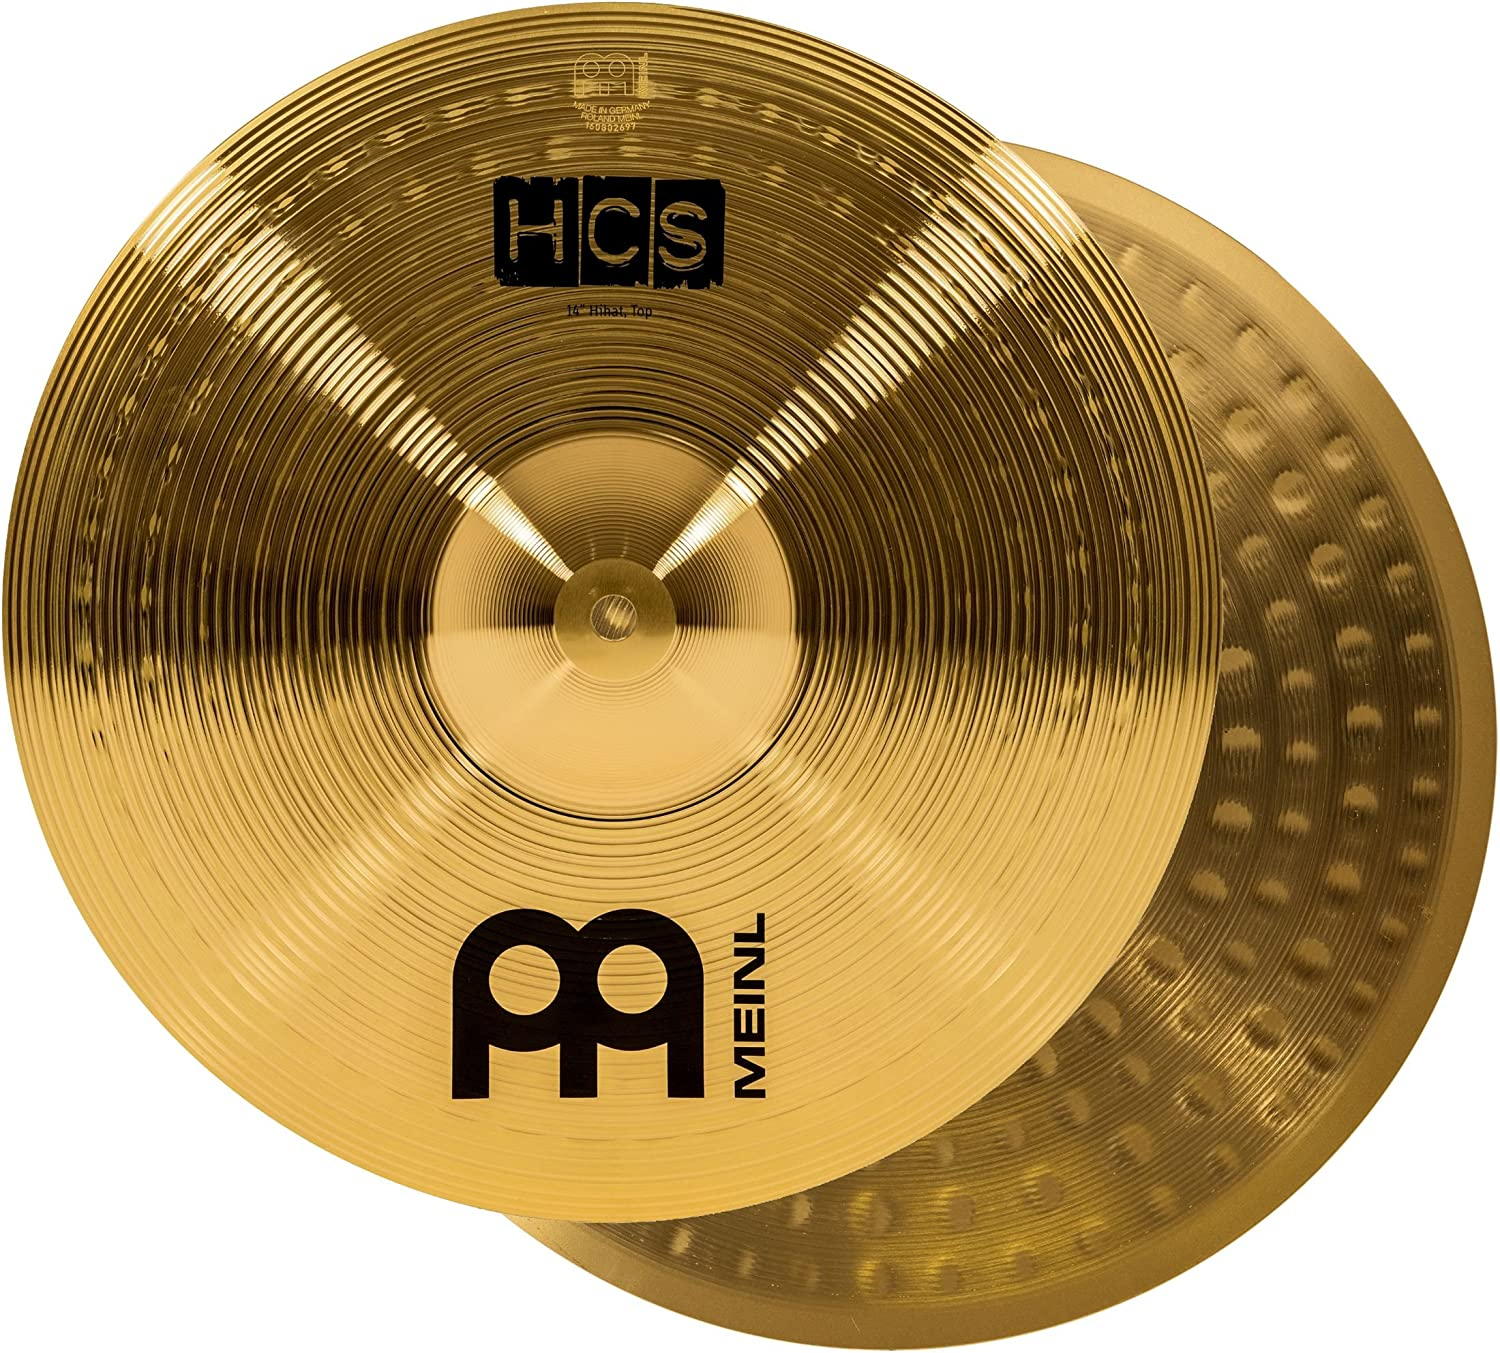 """Meinl 14"""" Hihat (Hi Hat) Cymbal Pair – Hcs Traditional Finish Brass For Drum Set"""